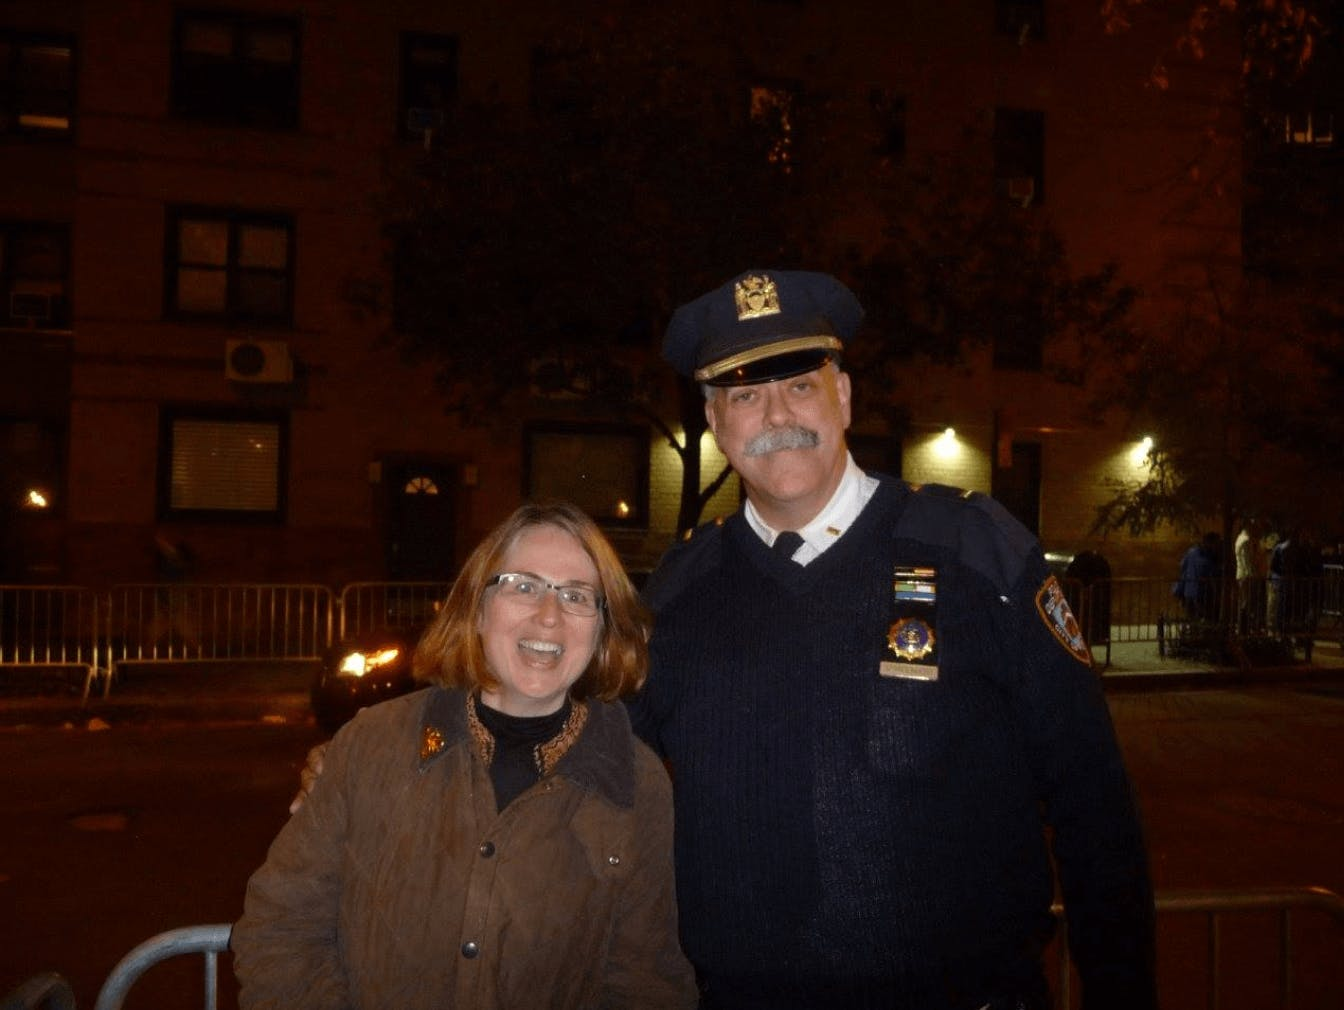 Carly meeting NYPD capt